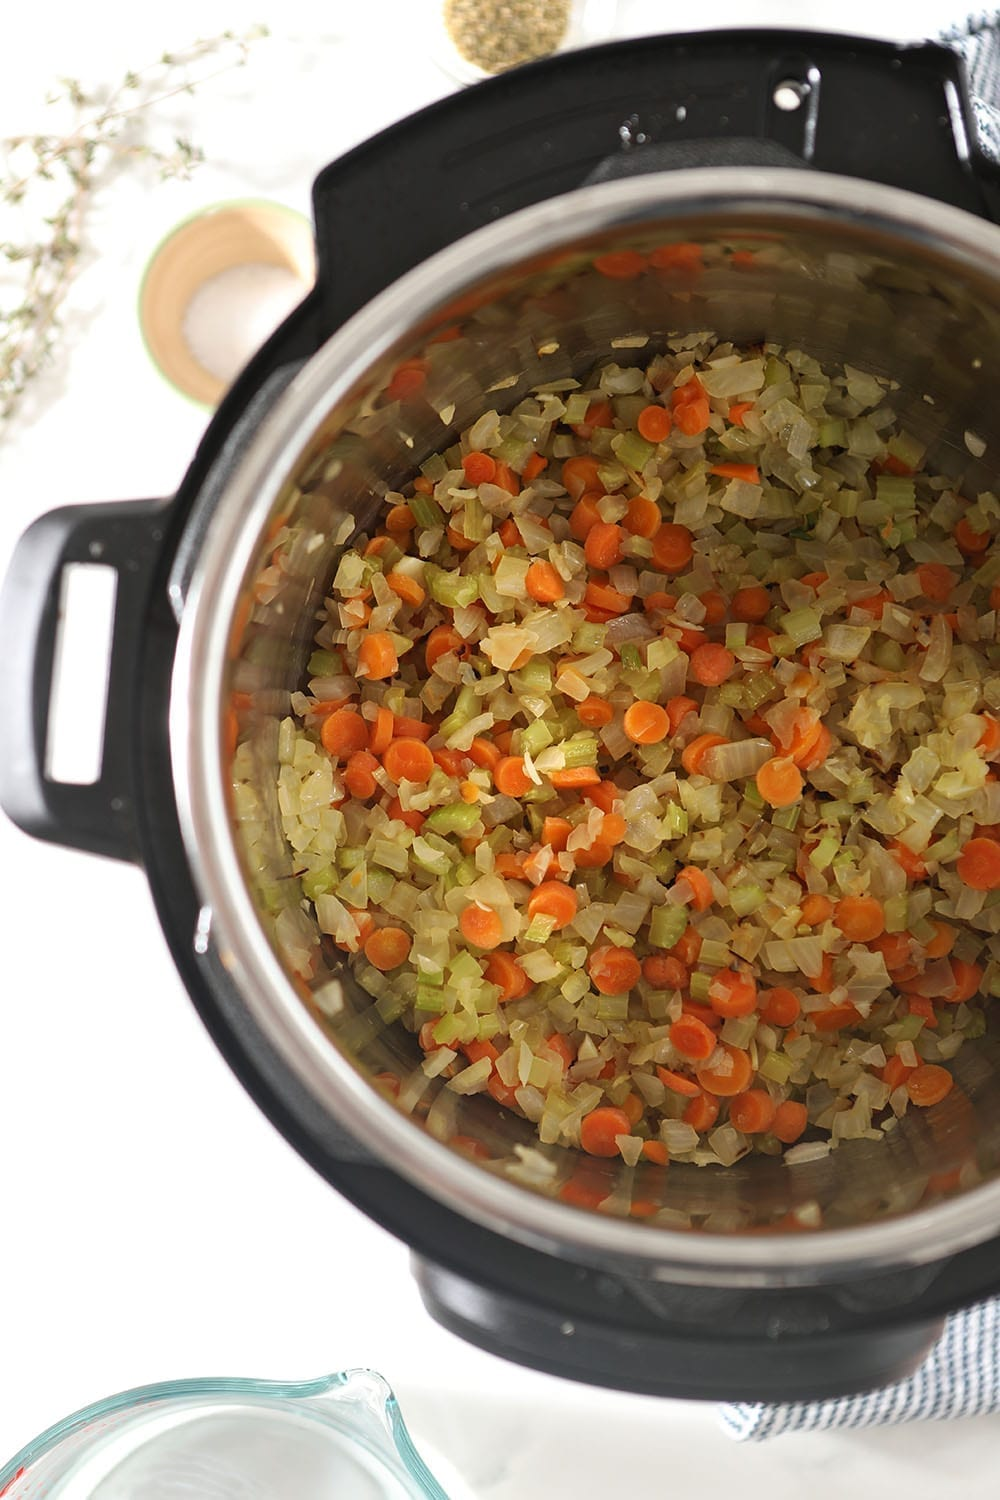 Vegetables are sauteed in the Instant Pot, from above